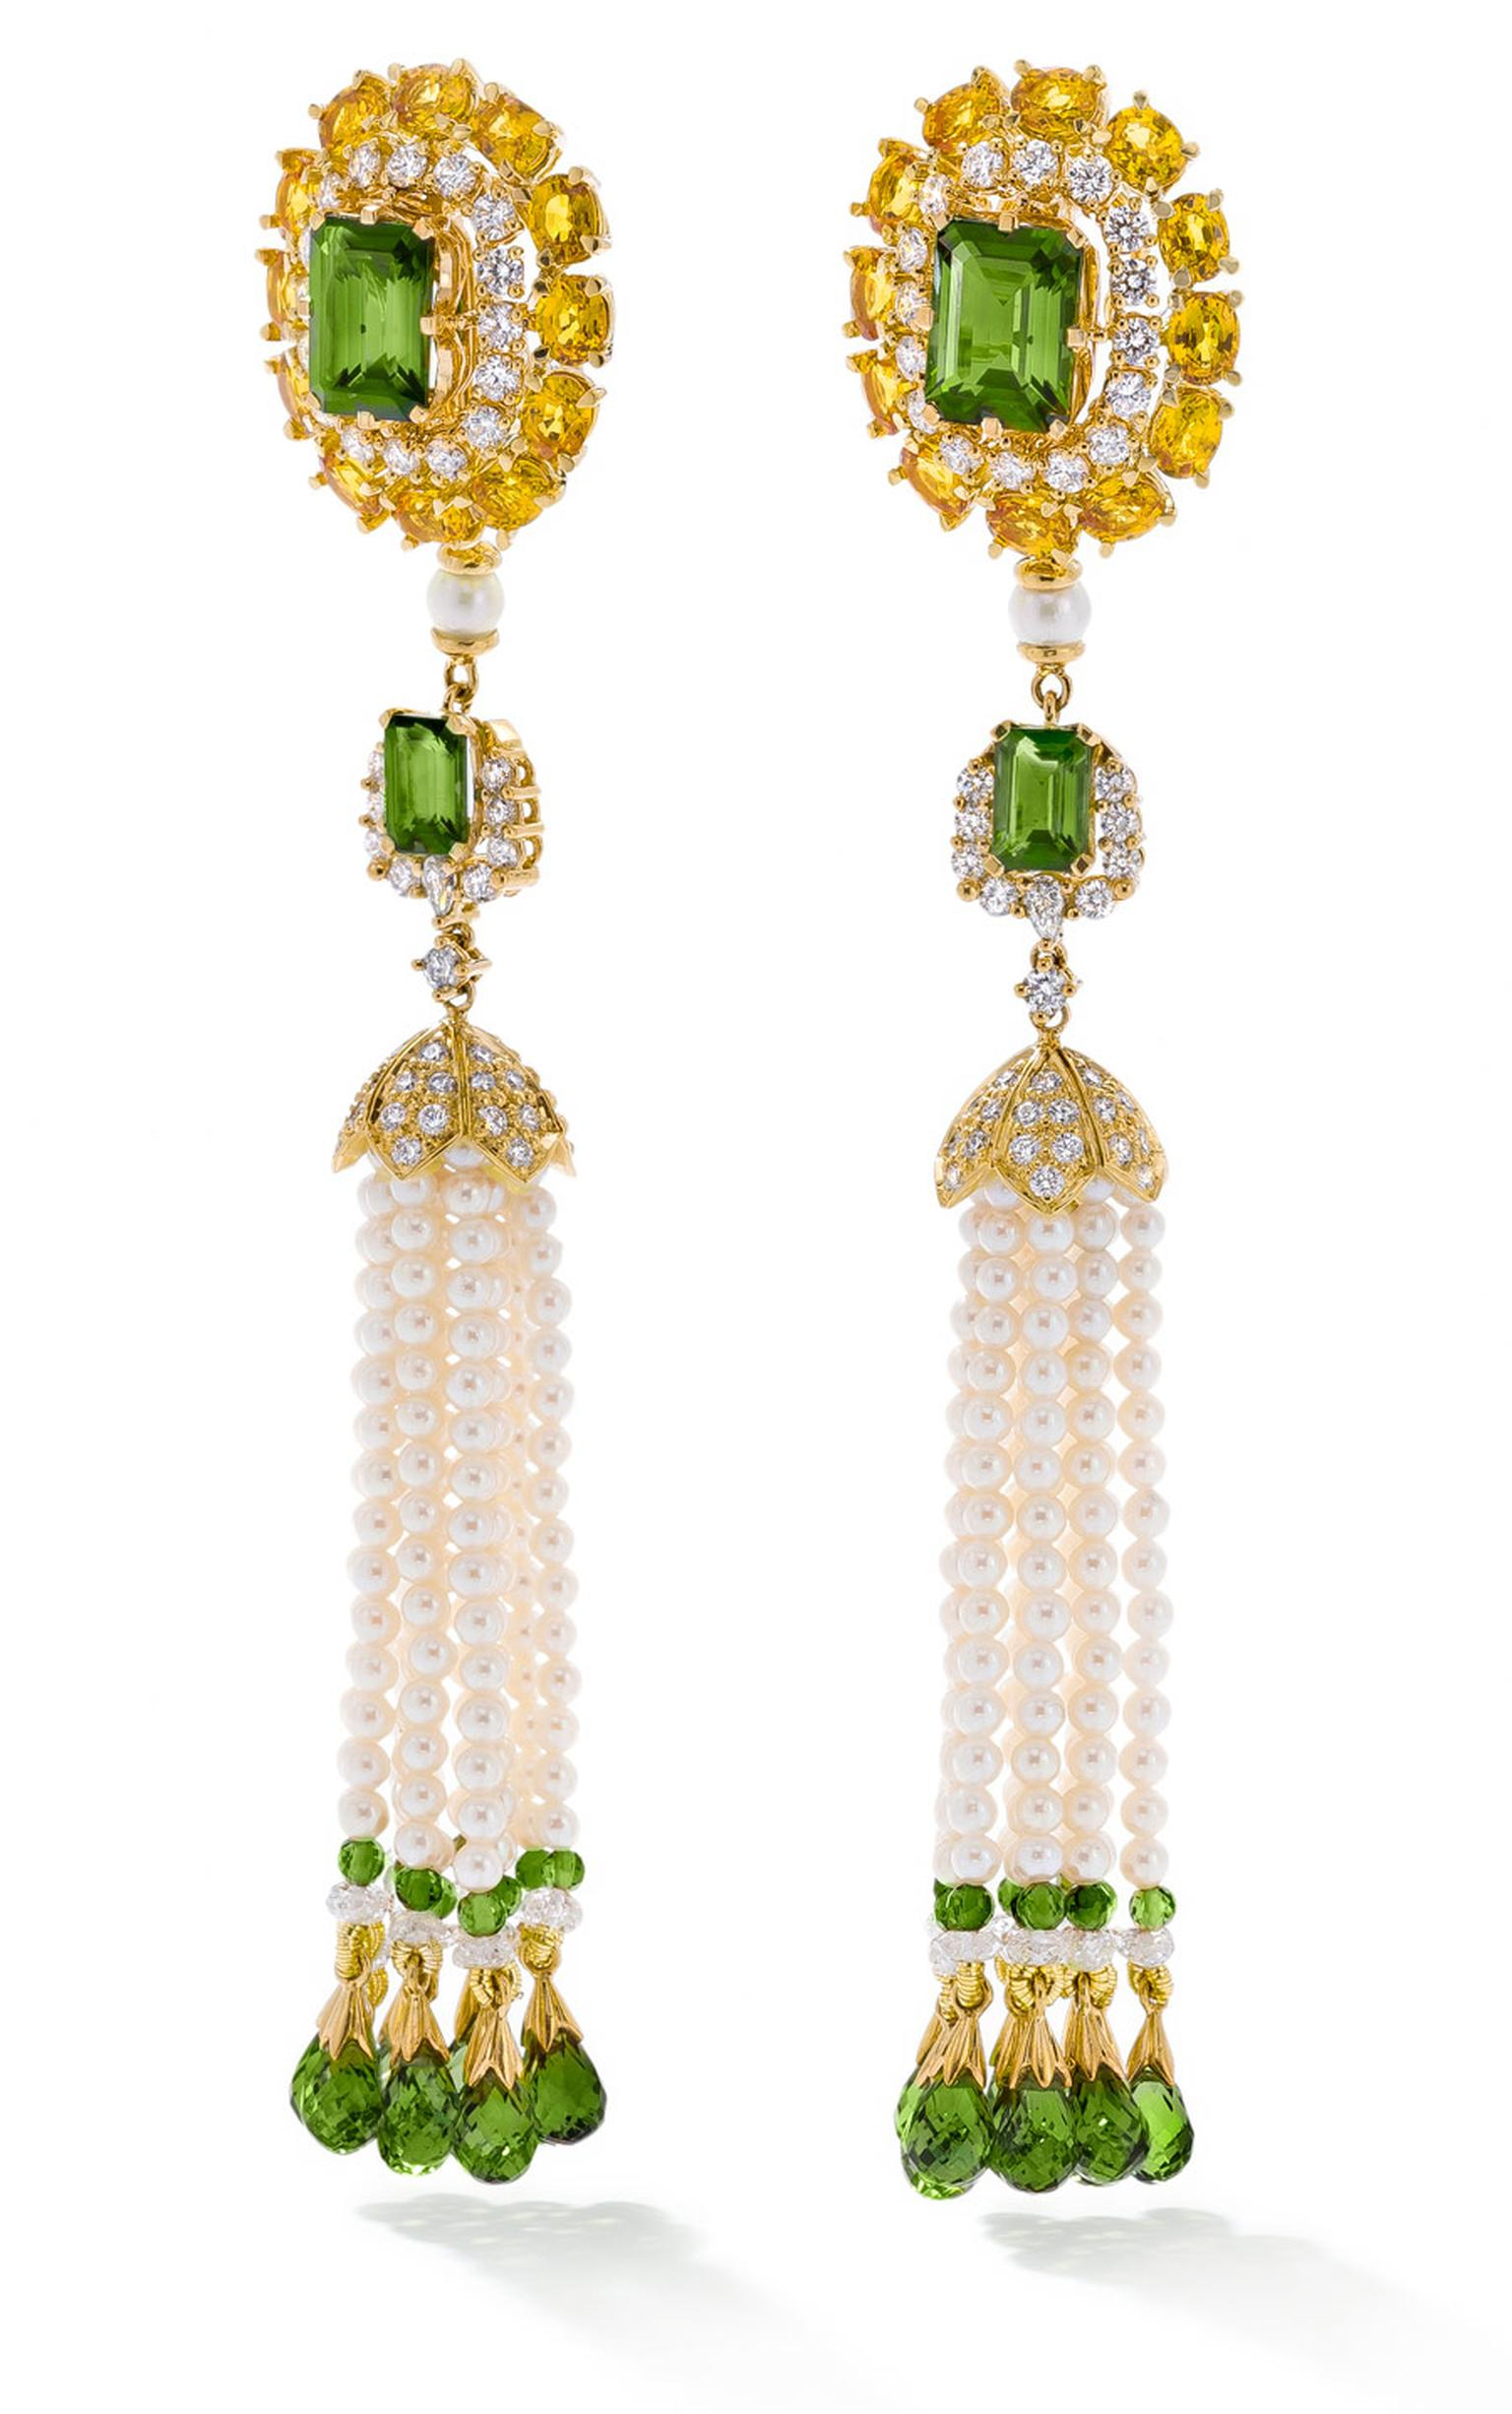 Earrings---Nizam-collection-Ganjam